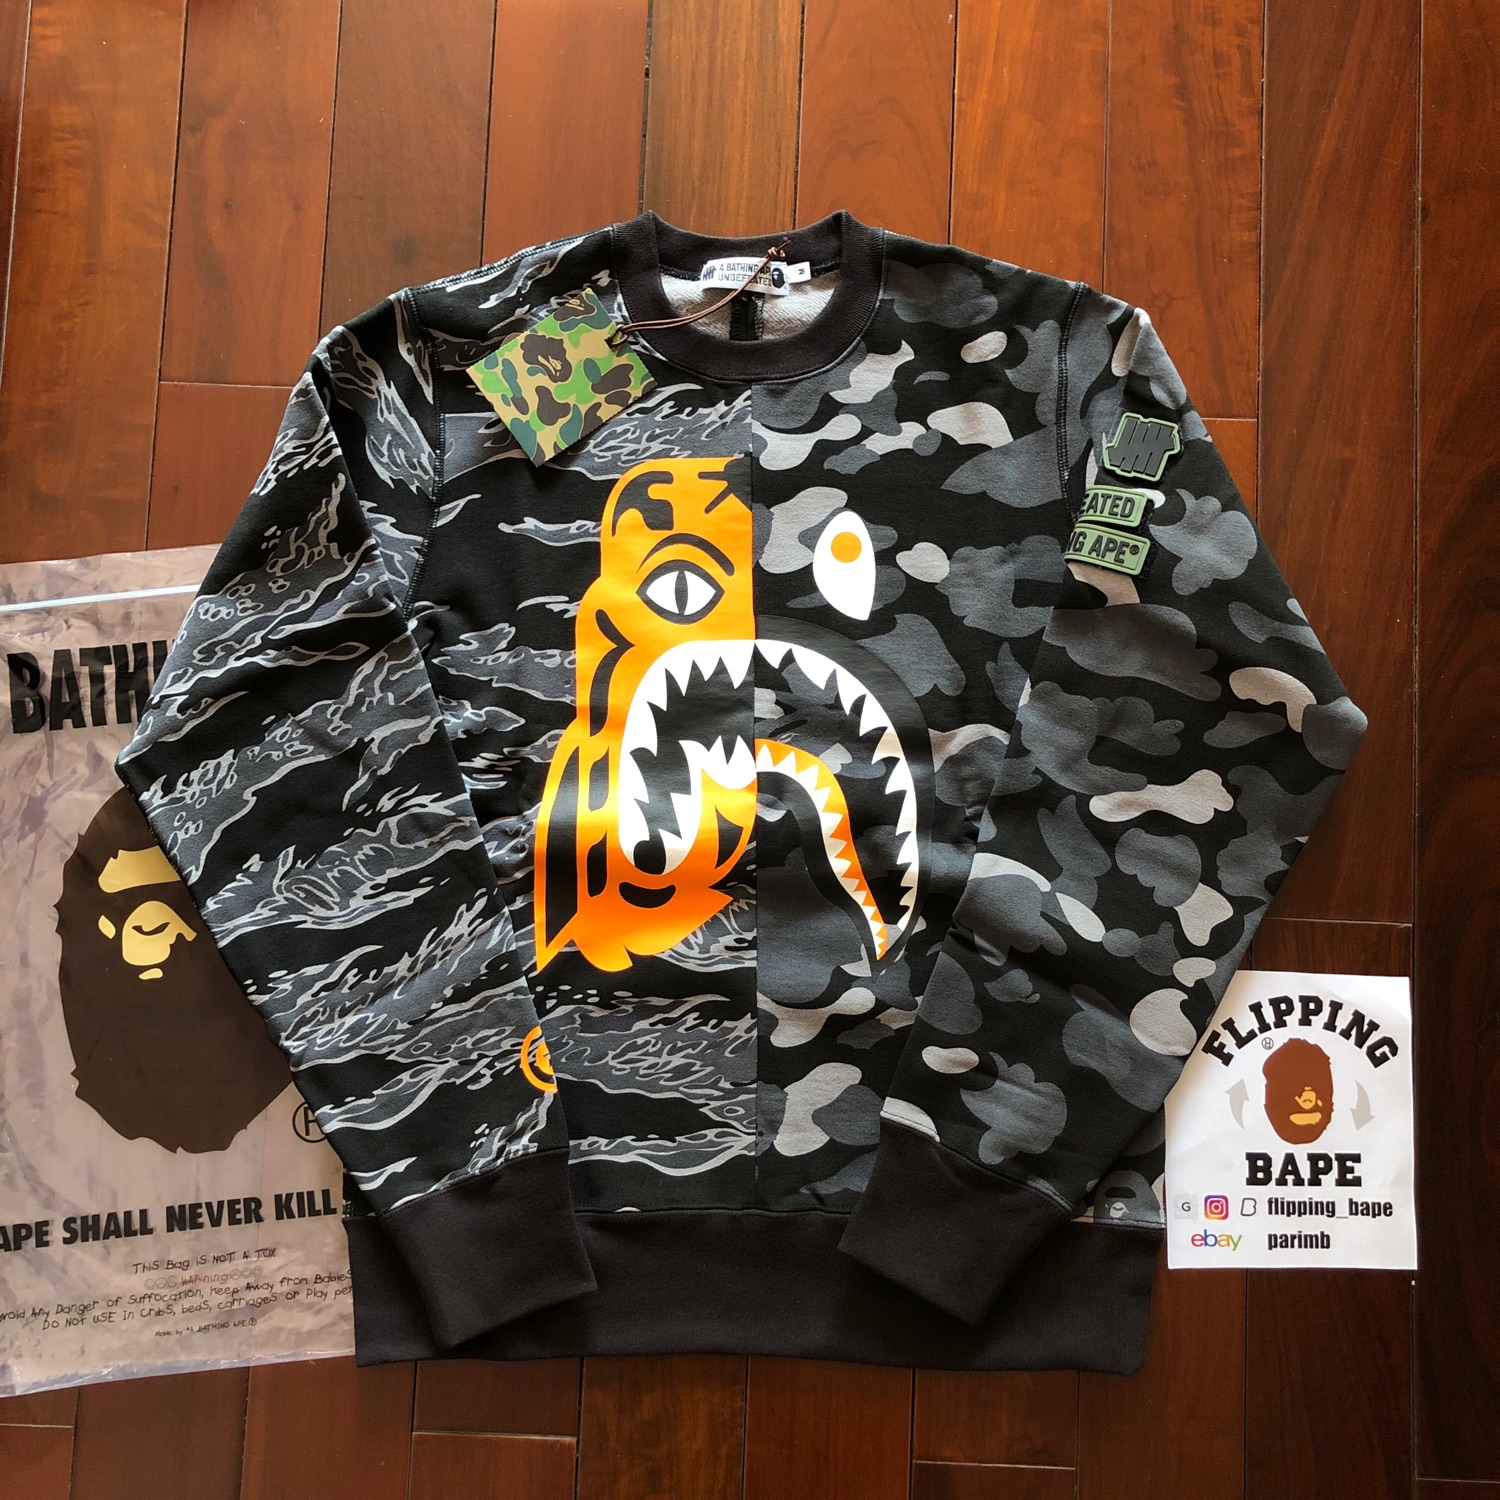 b5f3aead Bape X Undefeated Tiger Shark Crewneck